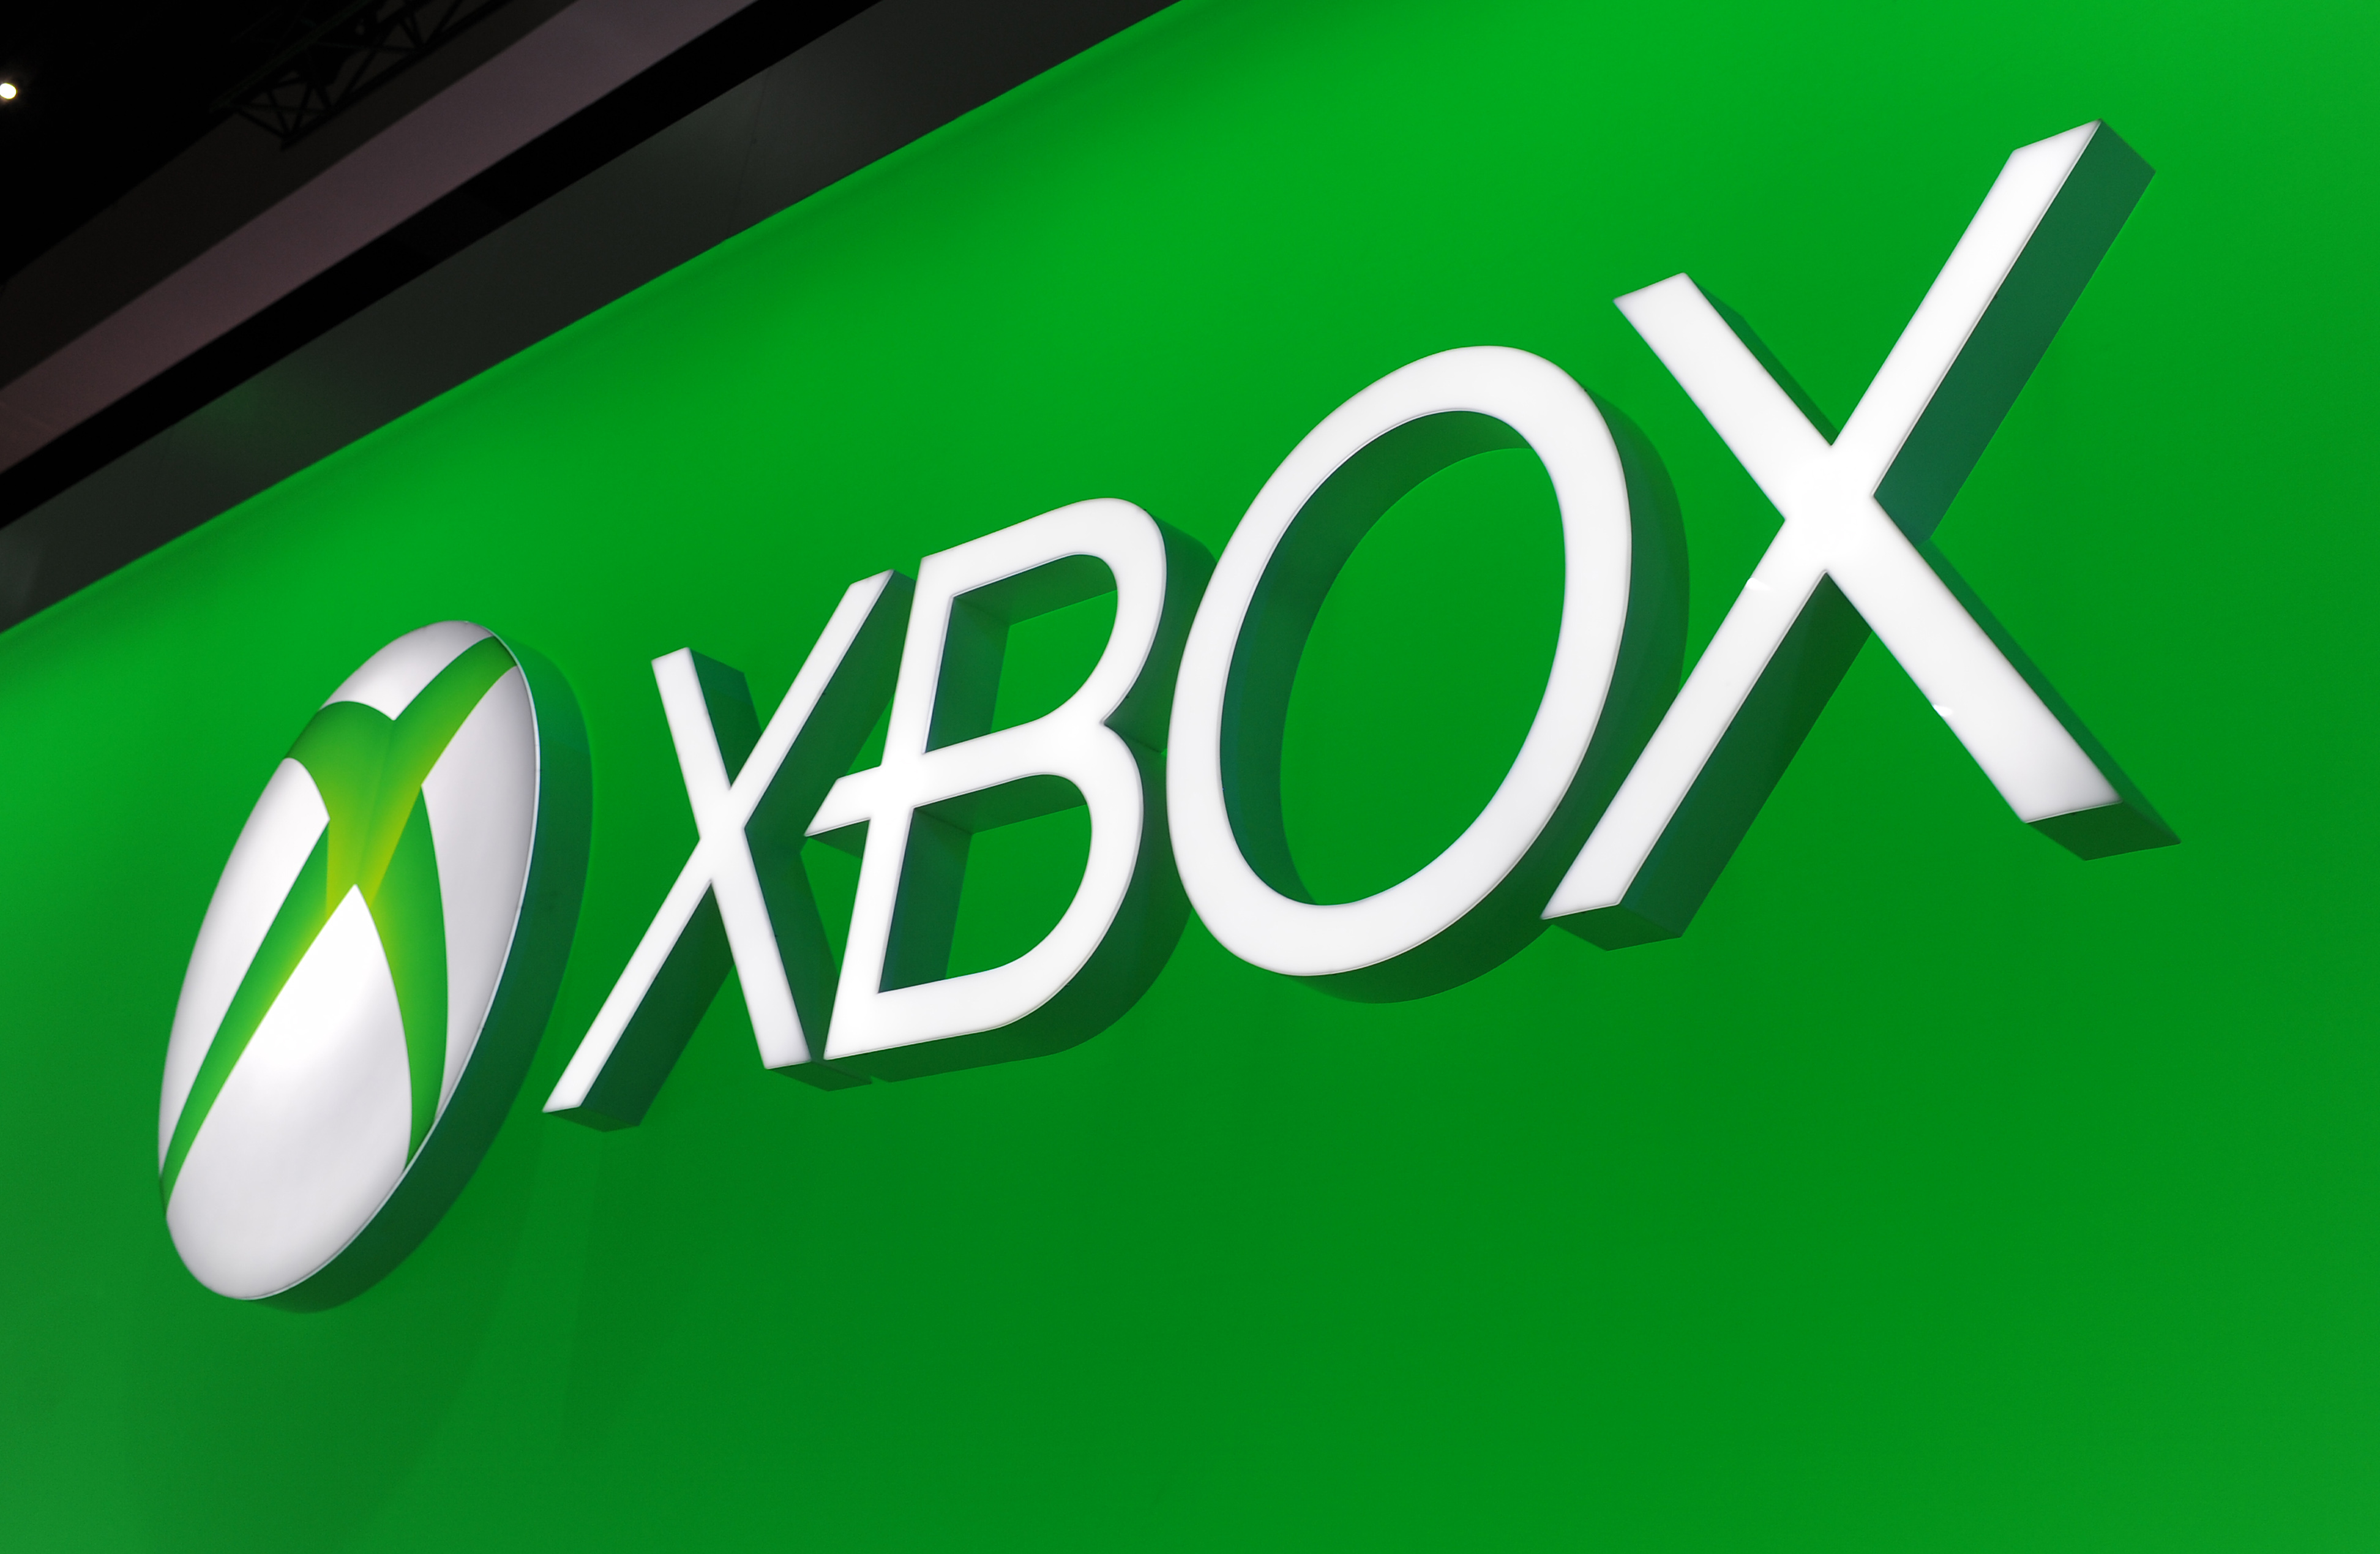 Microsoft partners with Time Warner to launch an Xbox 360 app with 300 live TV channels this summer